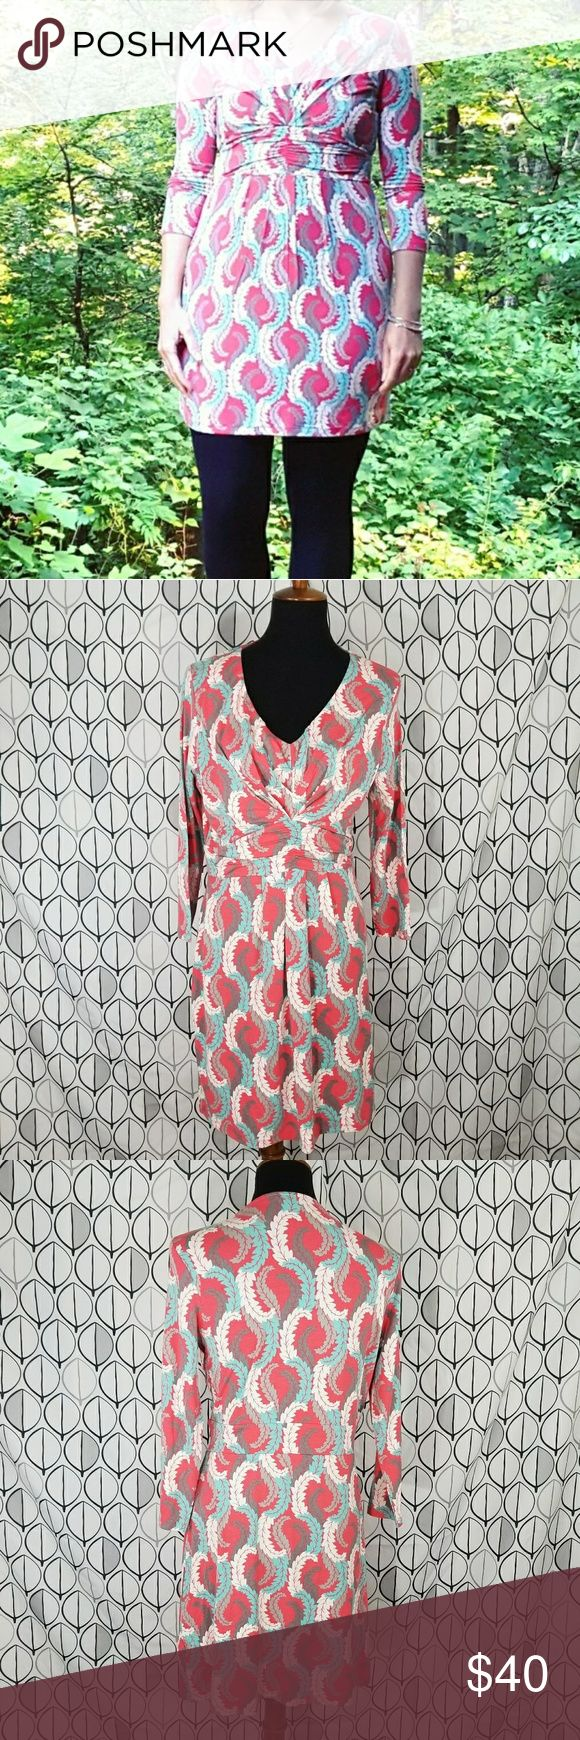 """Boden 3/4 Sleeve Coral & Teal feather Tunic Dress Boden super soft Tunic dress with coral teal white feather pattern, dress has a gathered emprire waist v neck 3/4 sleeves. Can be worn as a dress or a longer Tunic. UK size 14 US size 10. In excellent shape. Dress has somw stretch. Measurements laying flat are approximate bust 18.25""""-20"""" length 35"""" waist 15.25""""-17"""" Boden Tops Tunics"""